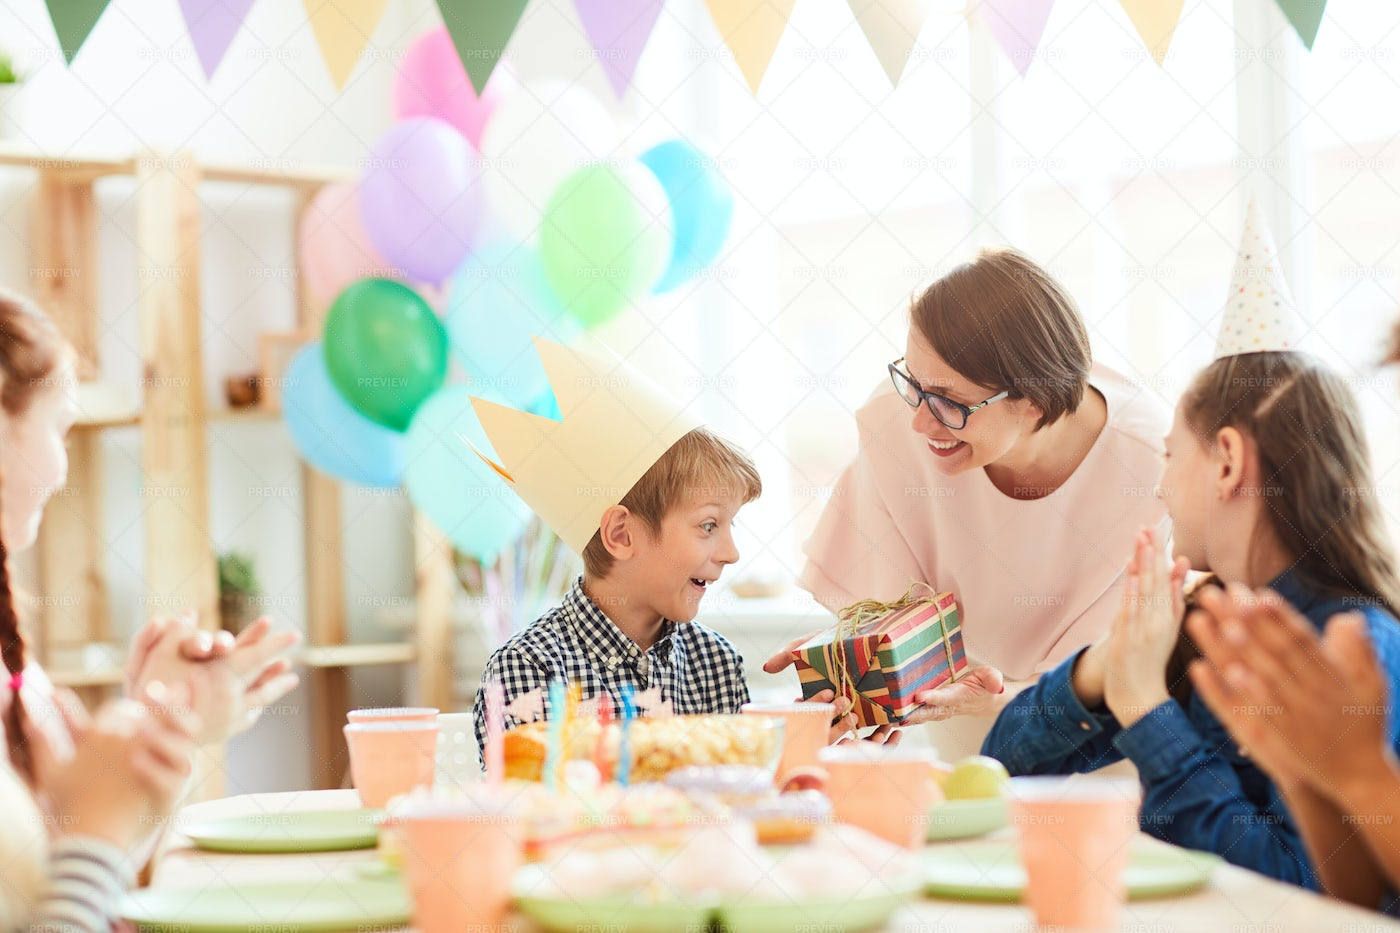 Excited Boy Getting Birthday Party: Stock Photos